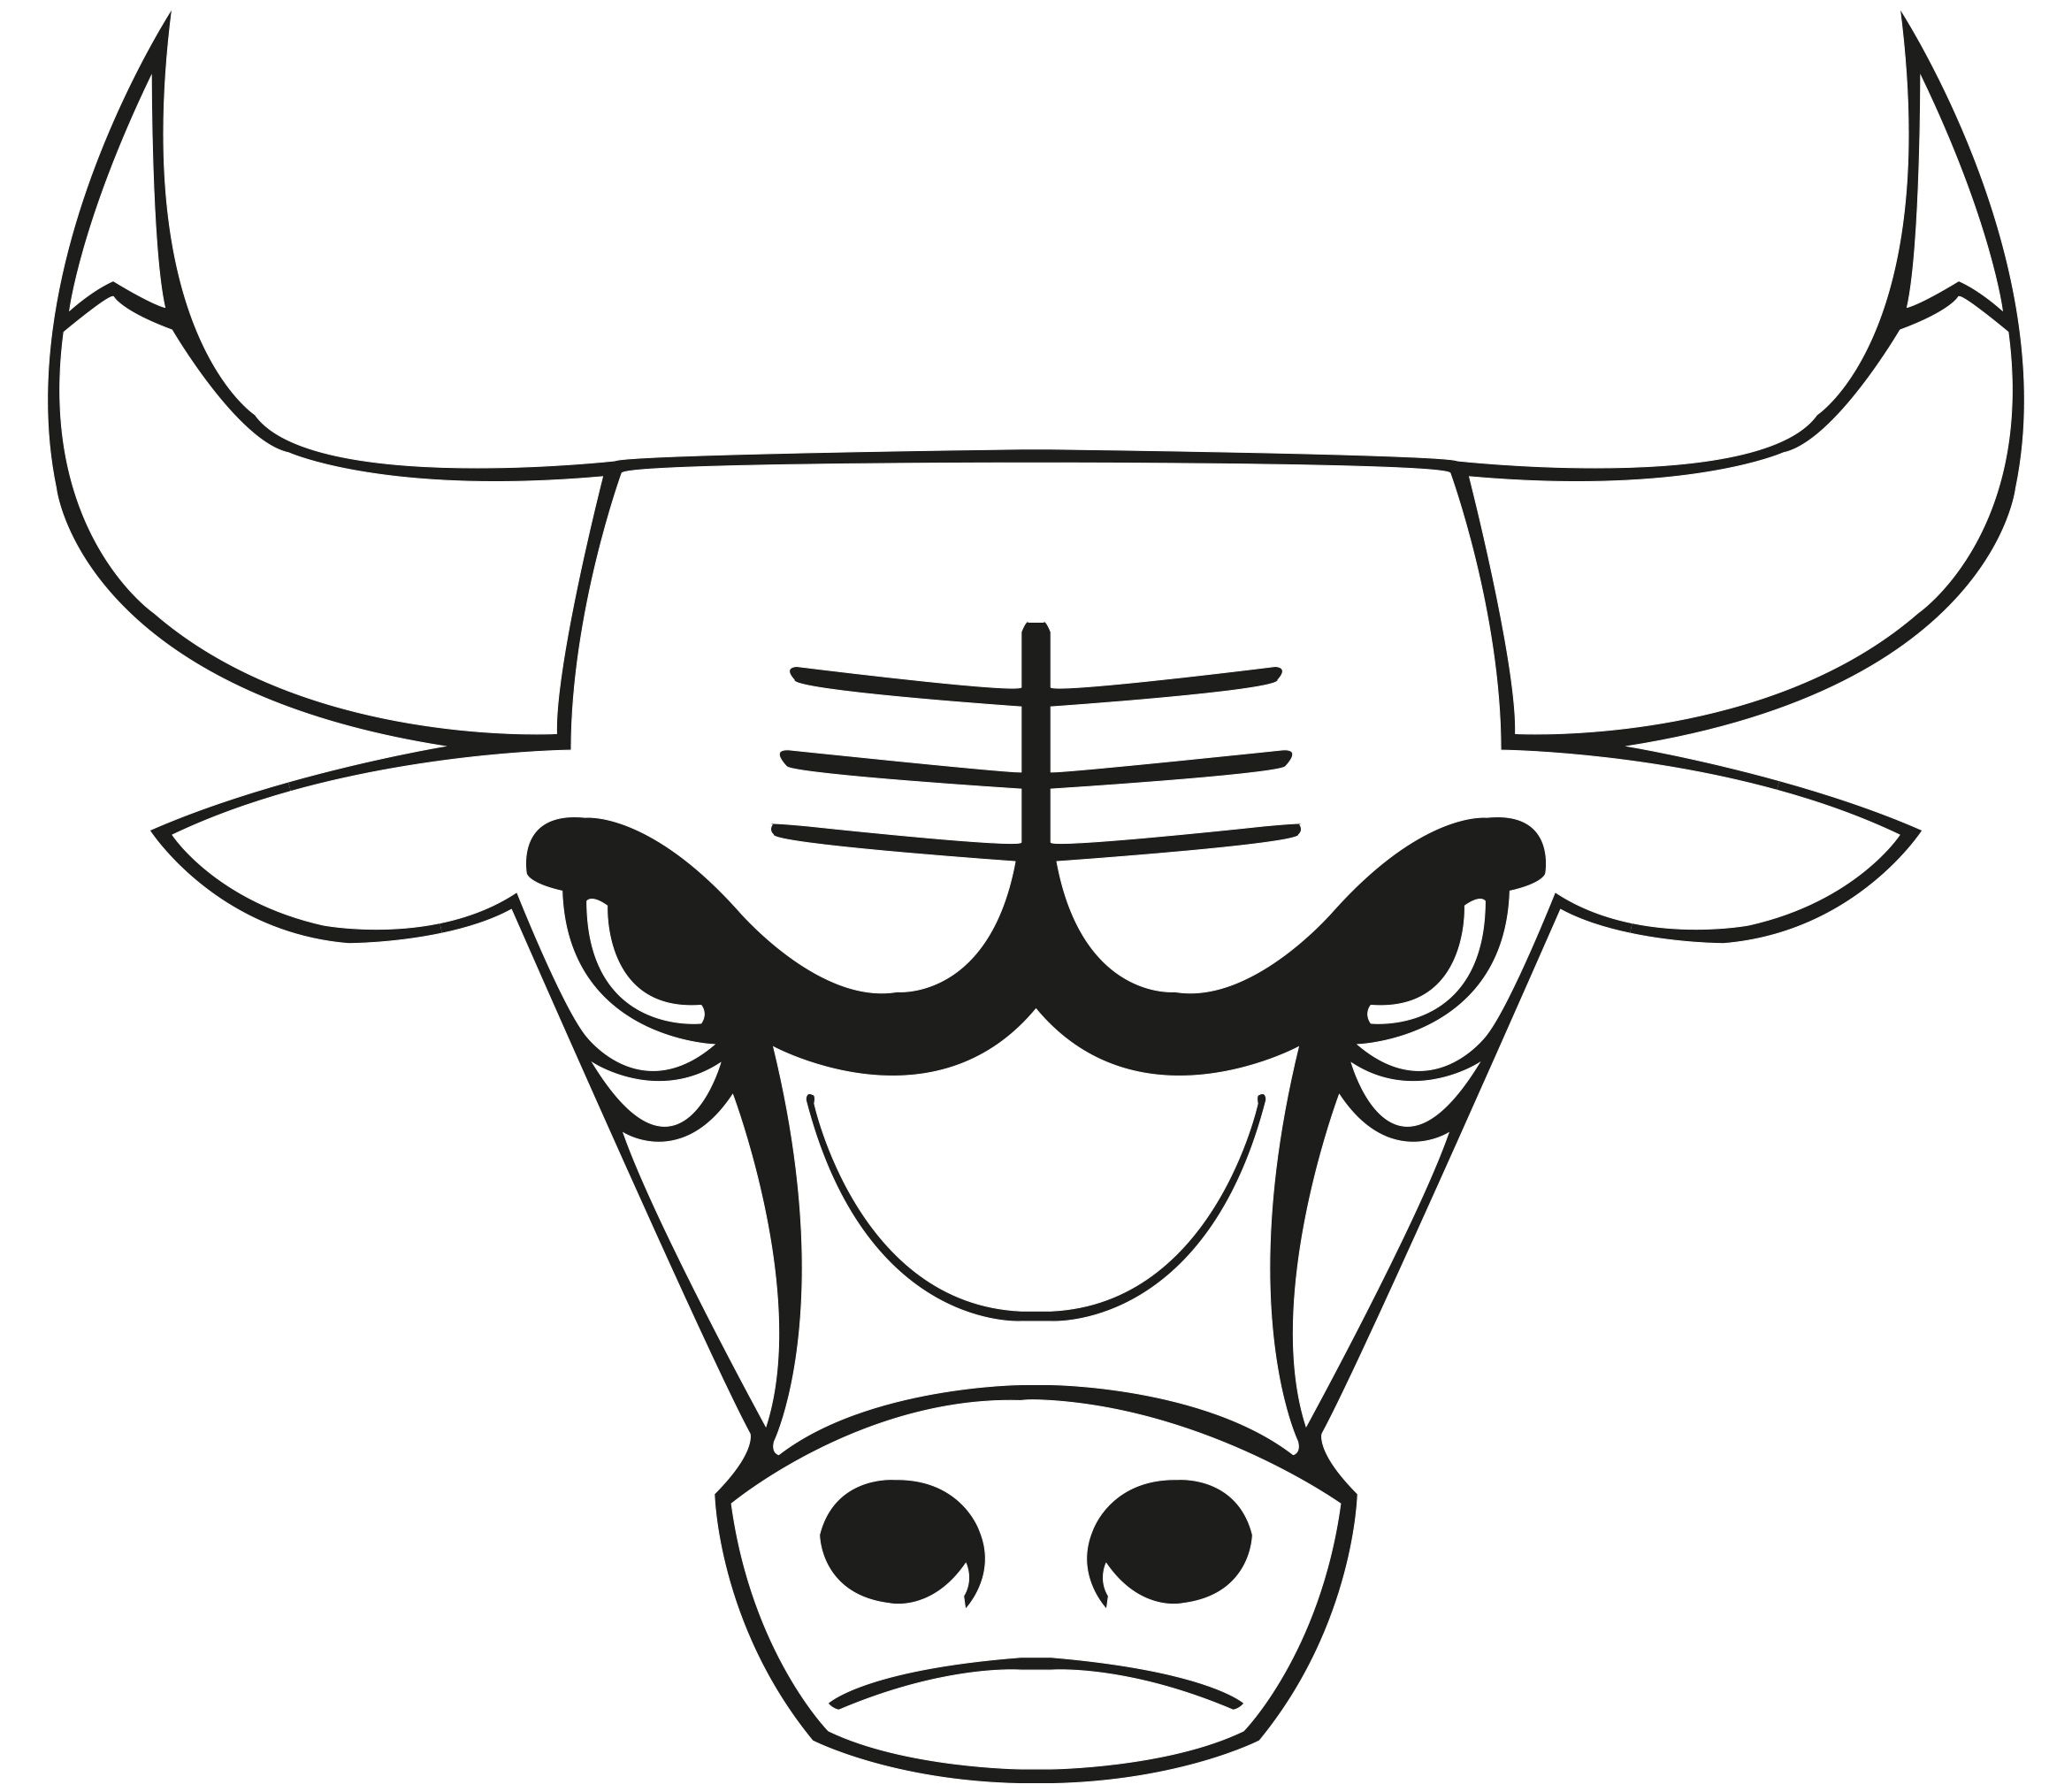 chicago bulls coloring pages chicago bulls coloring pages coloring home bulls pages coloring chicago